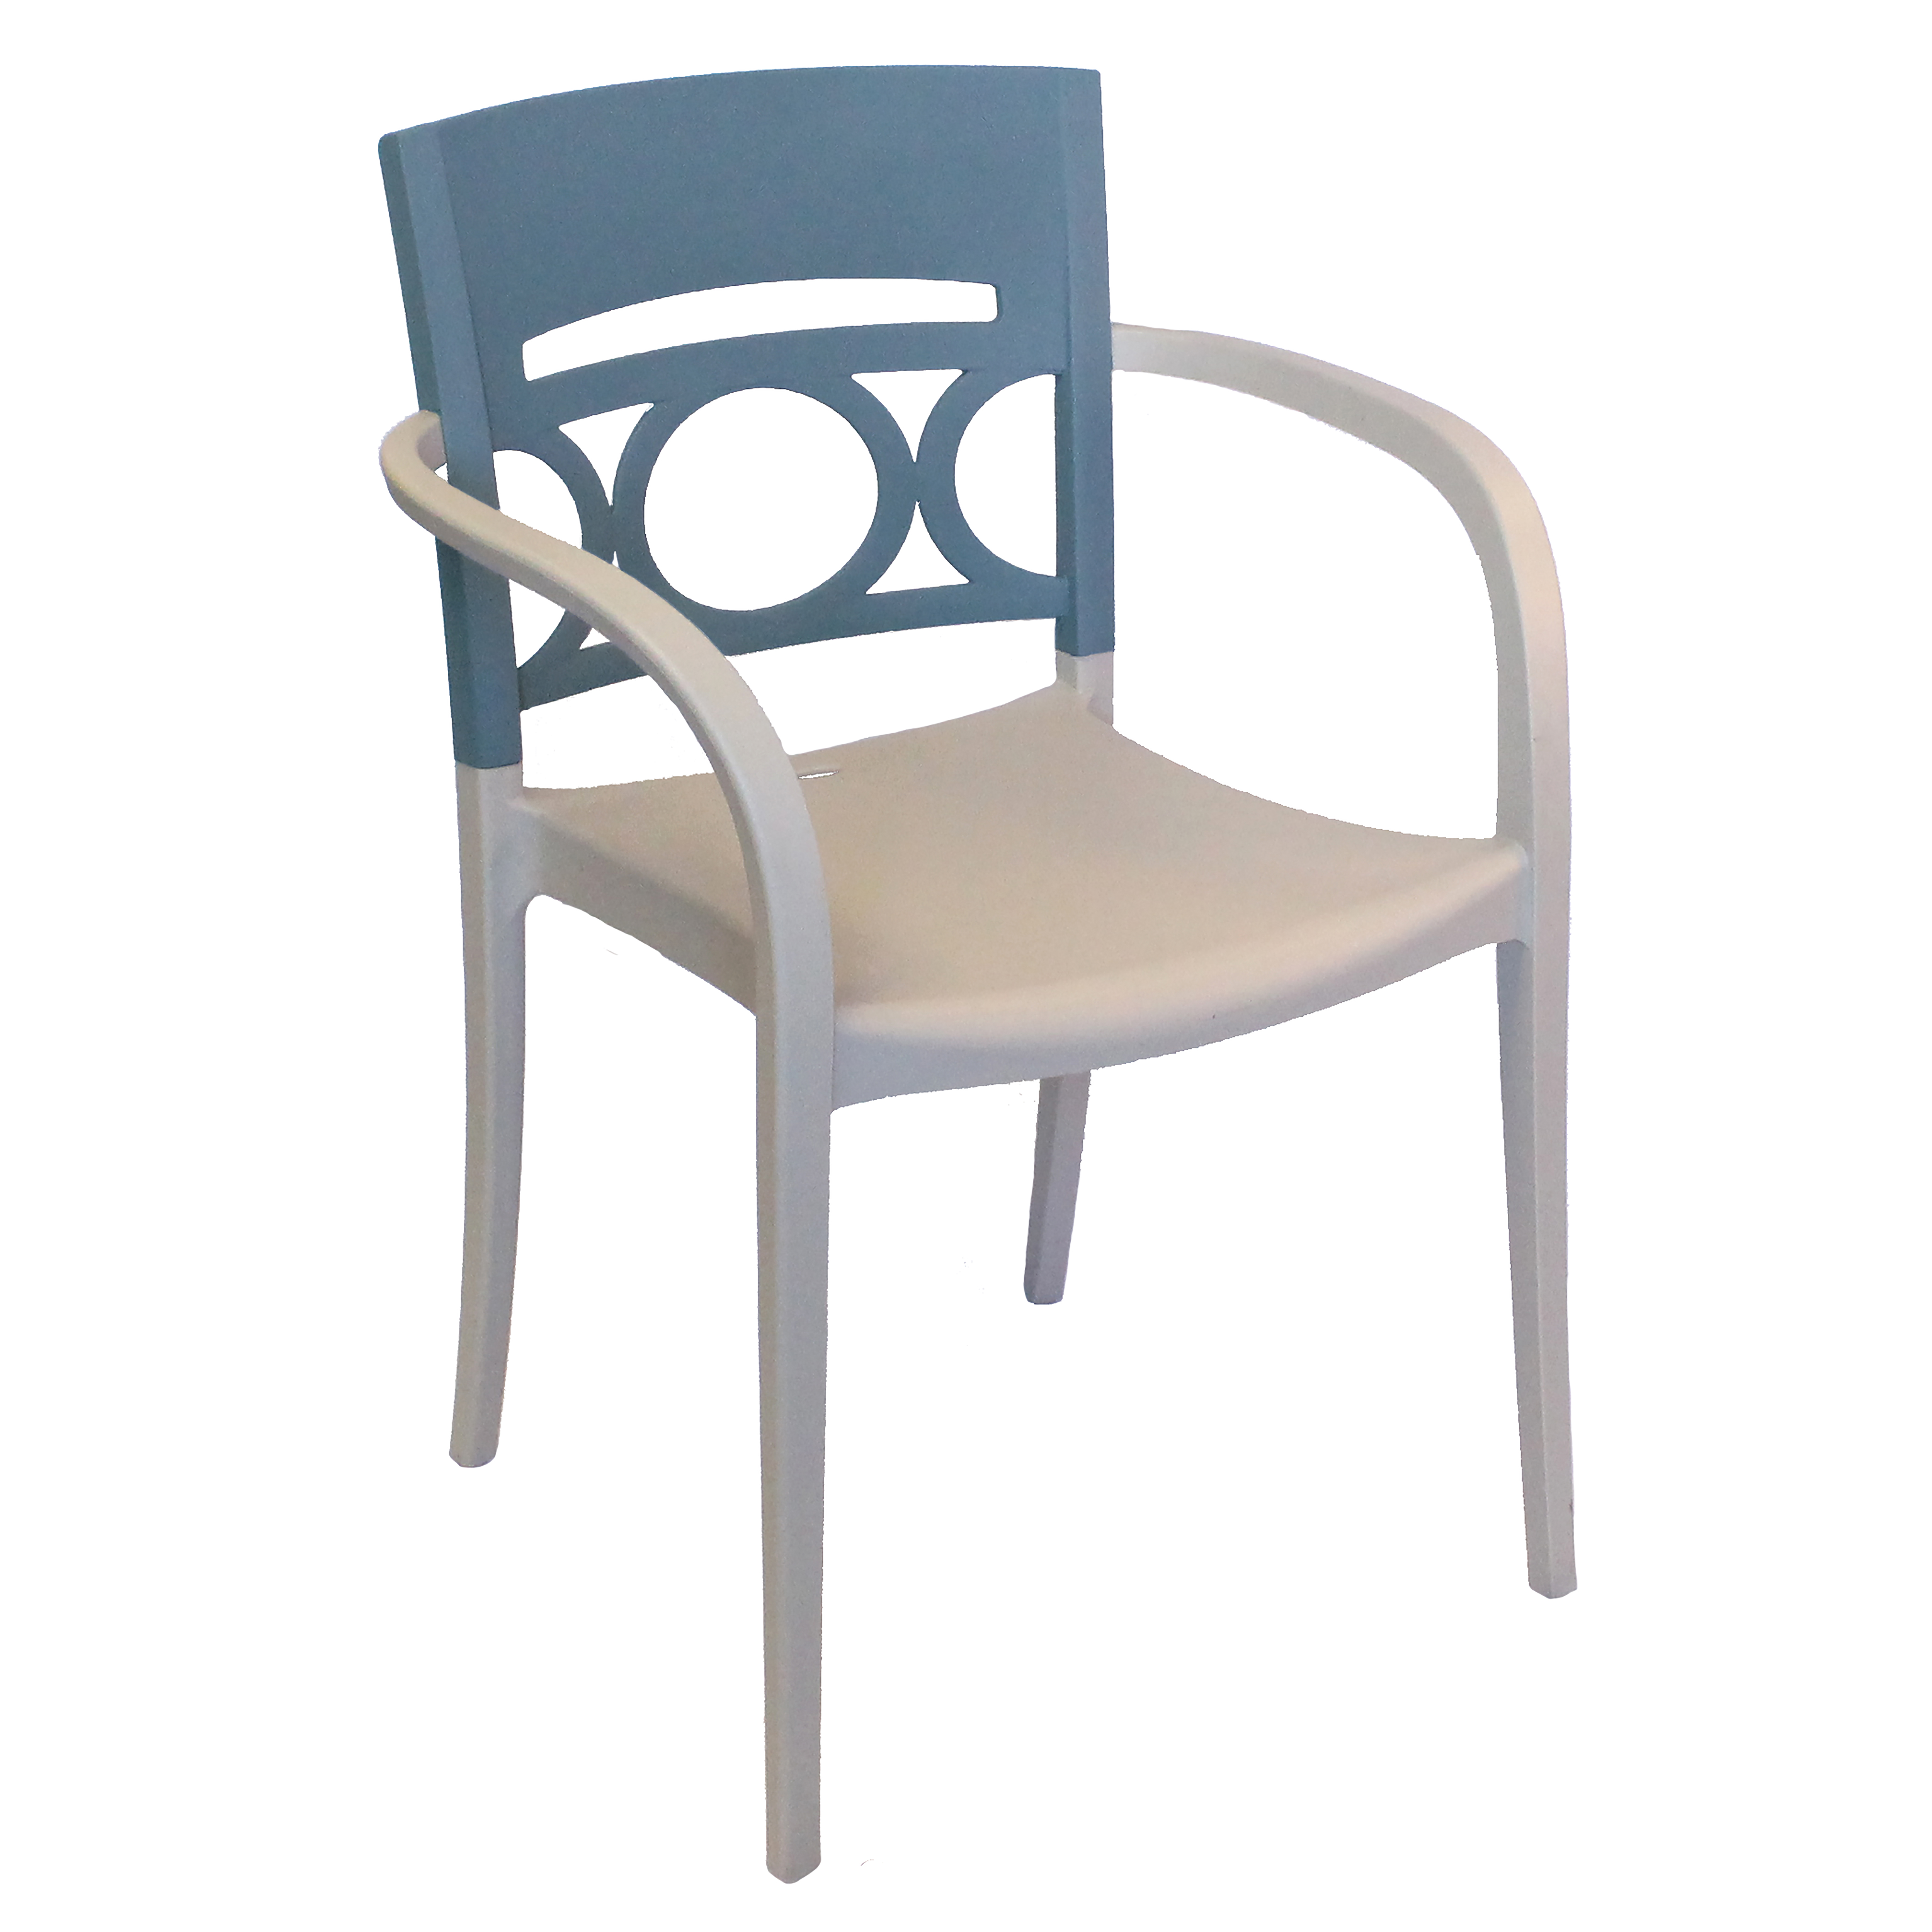 Grosfillex US556680 chair, armchair, stacking, outdoor